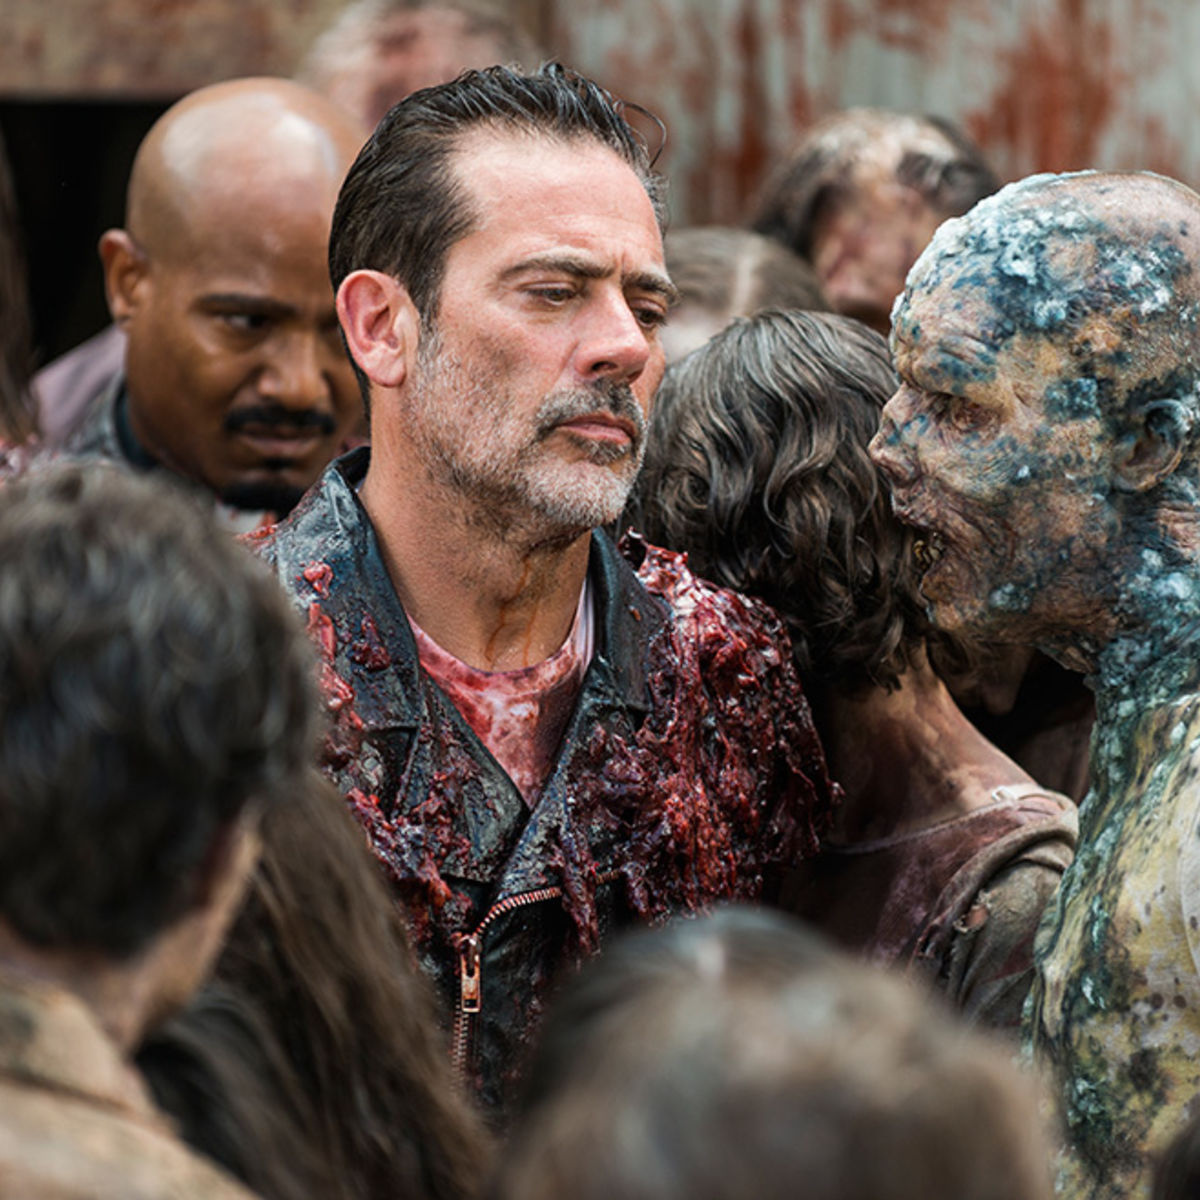 the-walking-dead-episode-805-negan-morgan-3-935.jpg